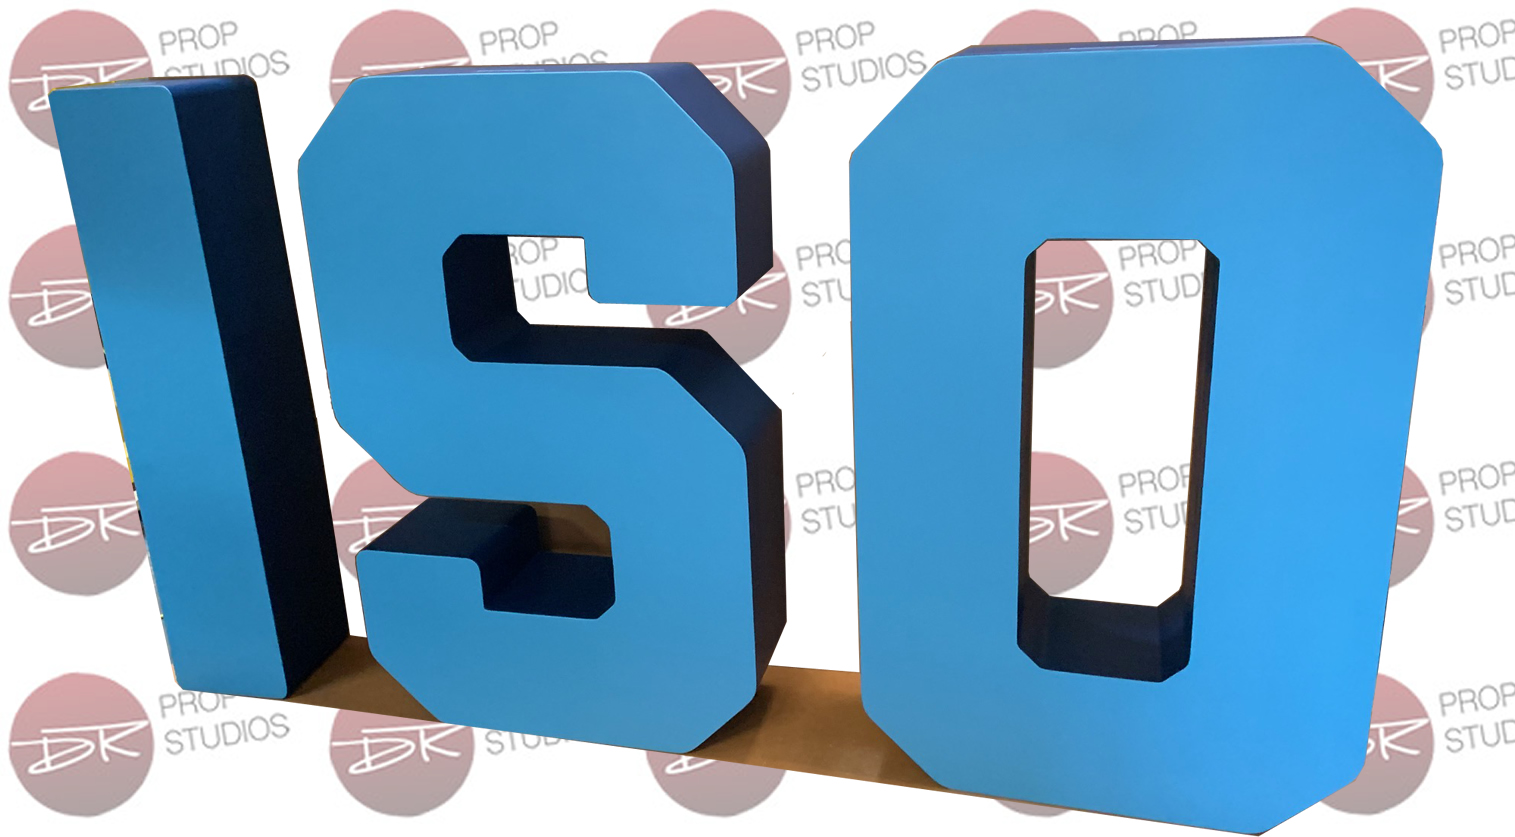 Large Foam Letters and Numbers for university and college displays